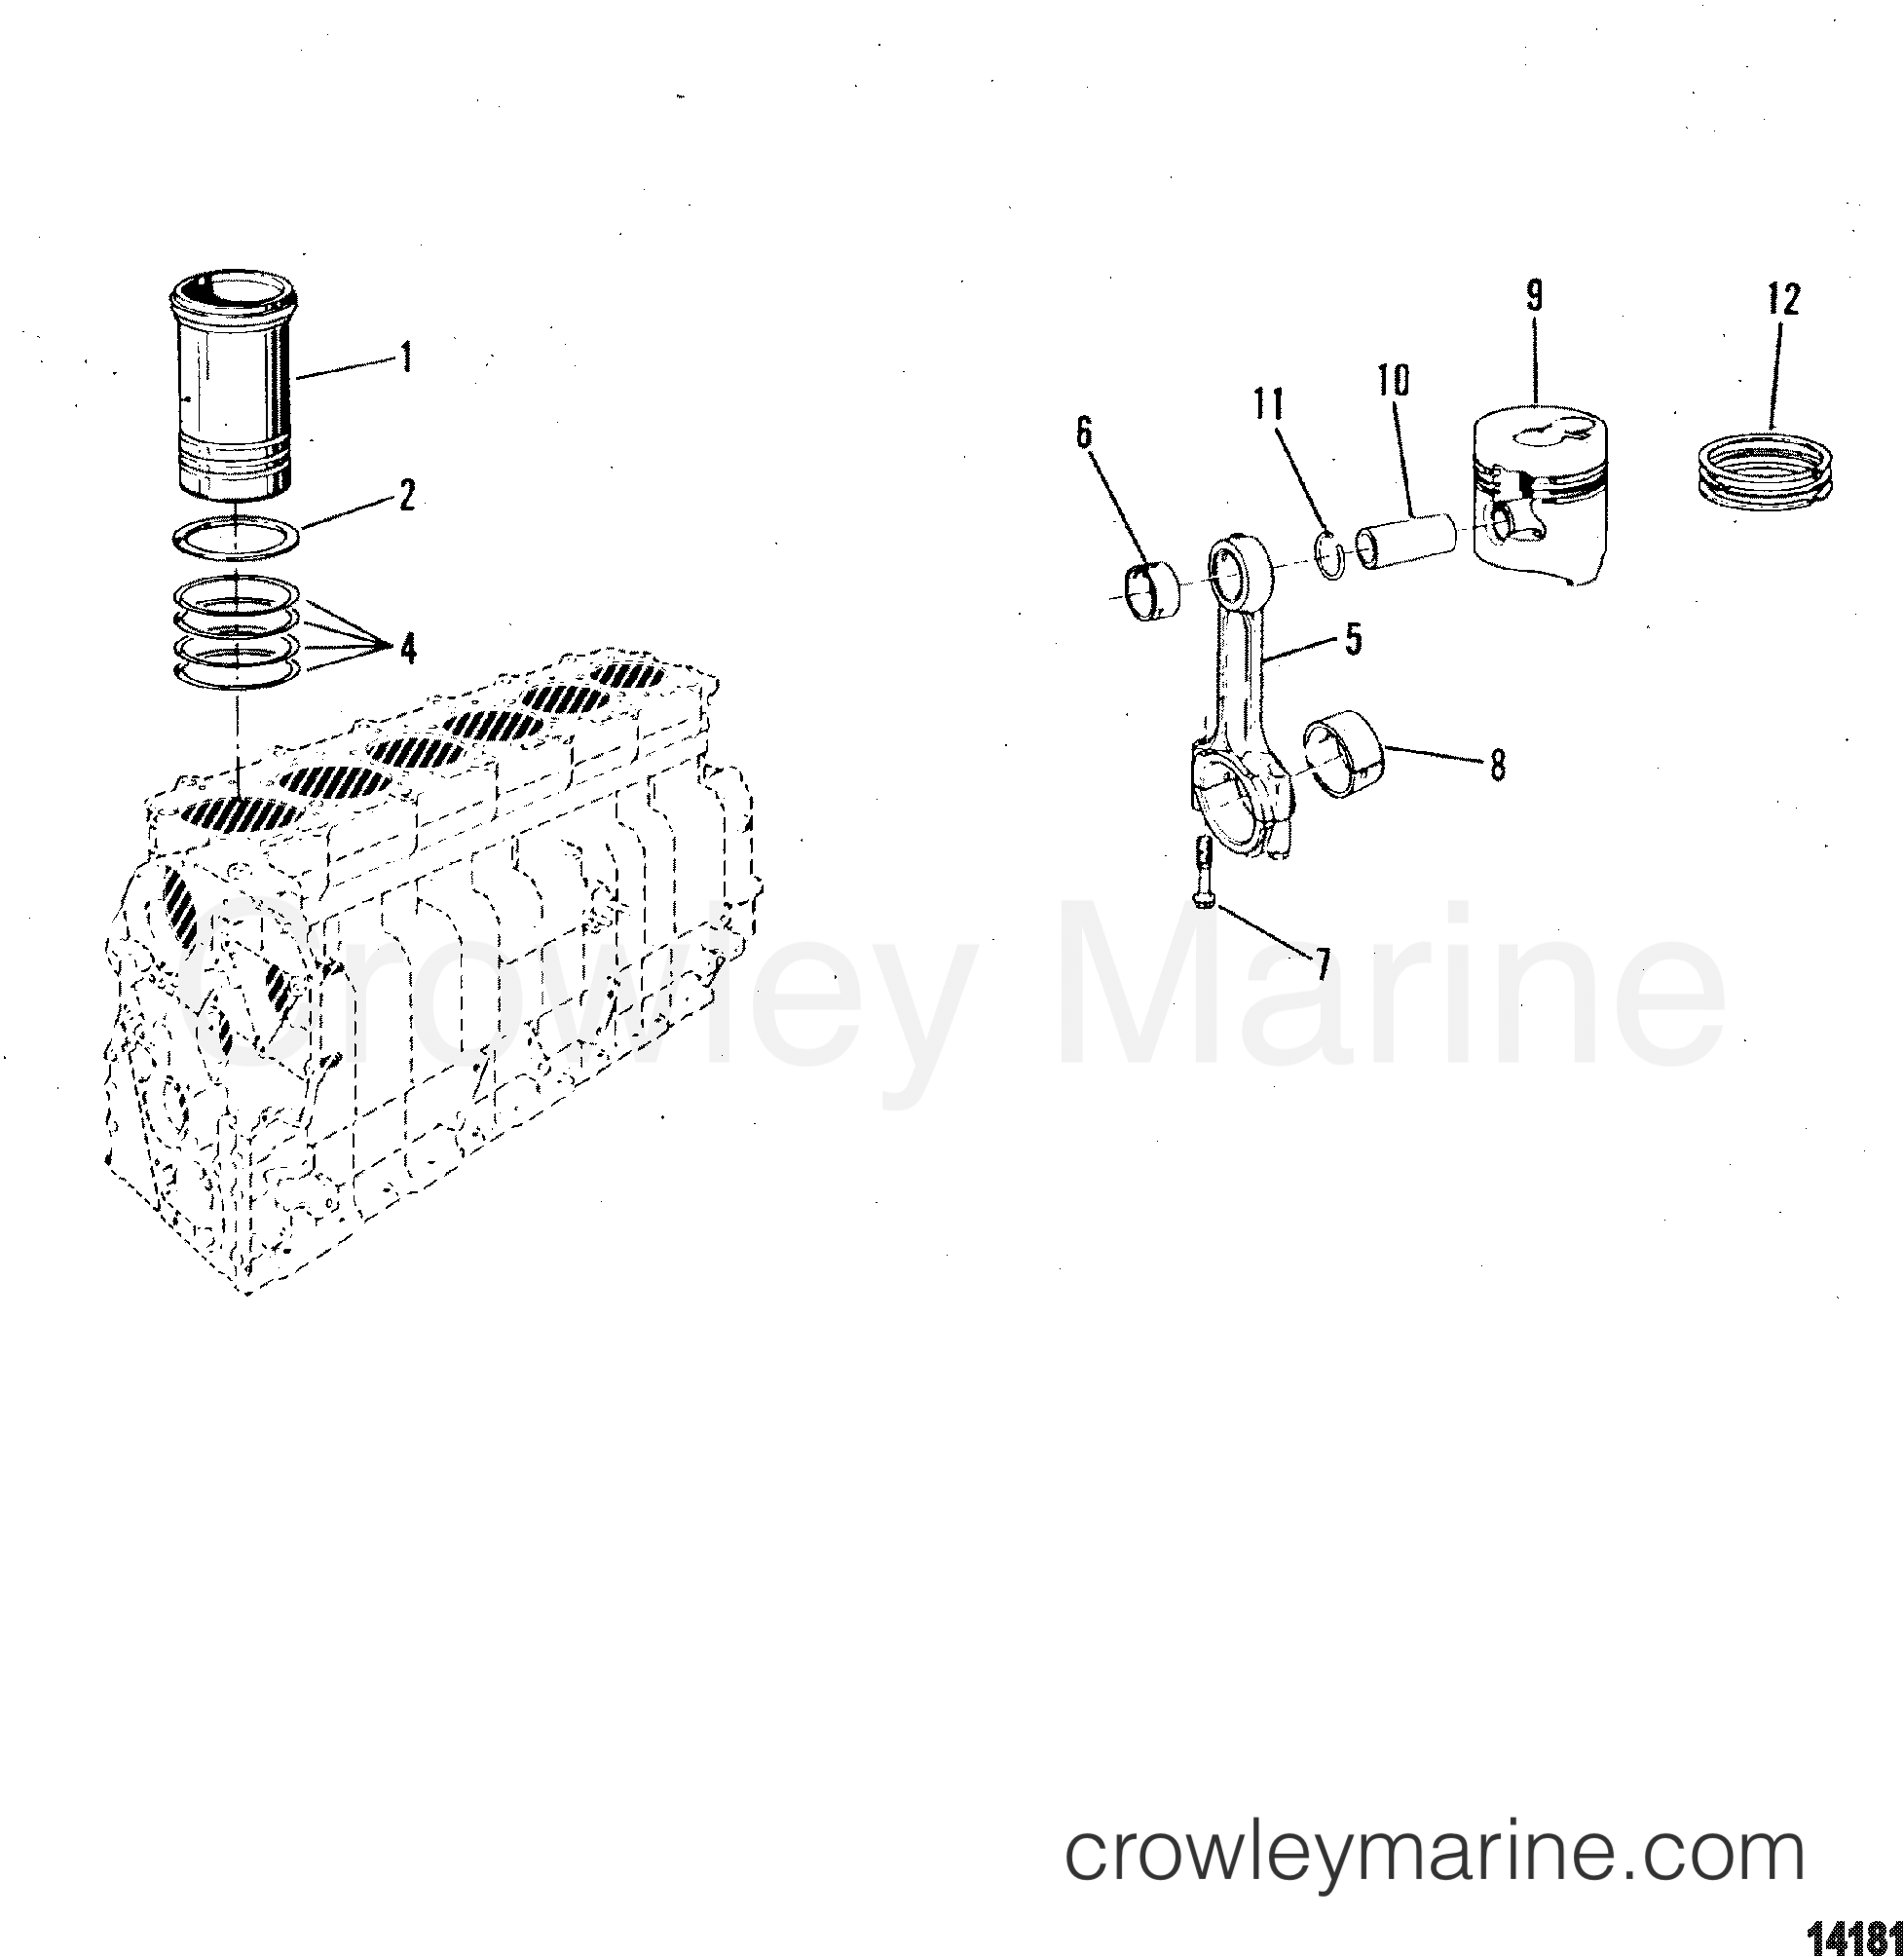 Connecting Rod And Piston